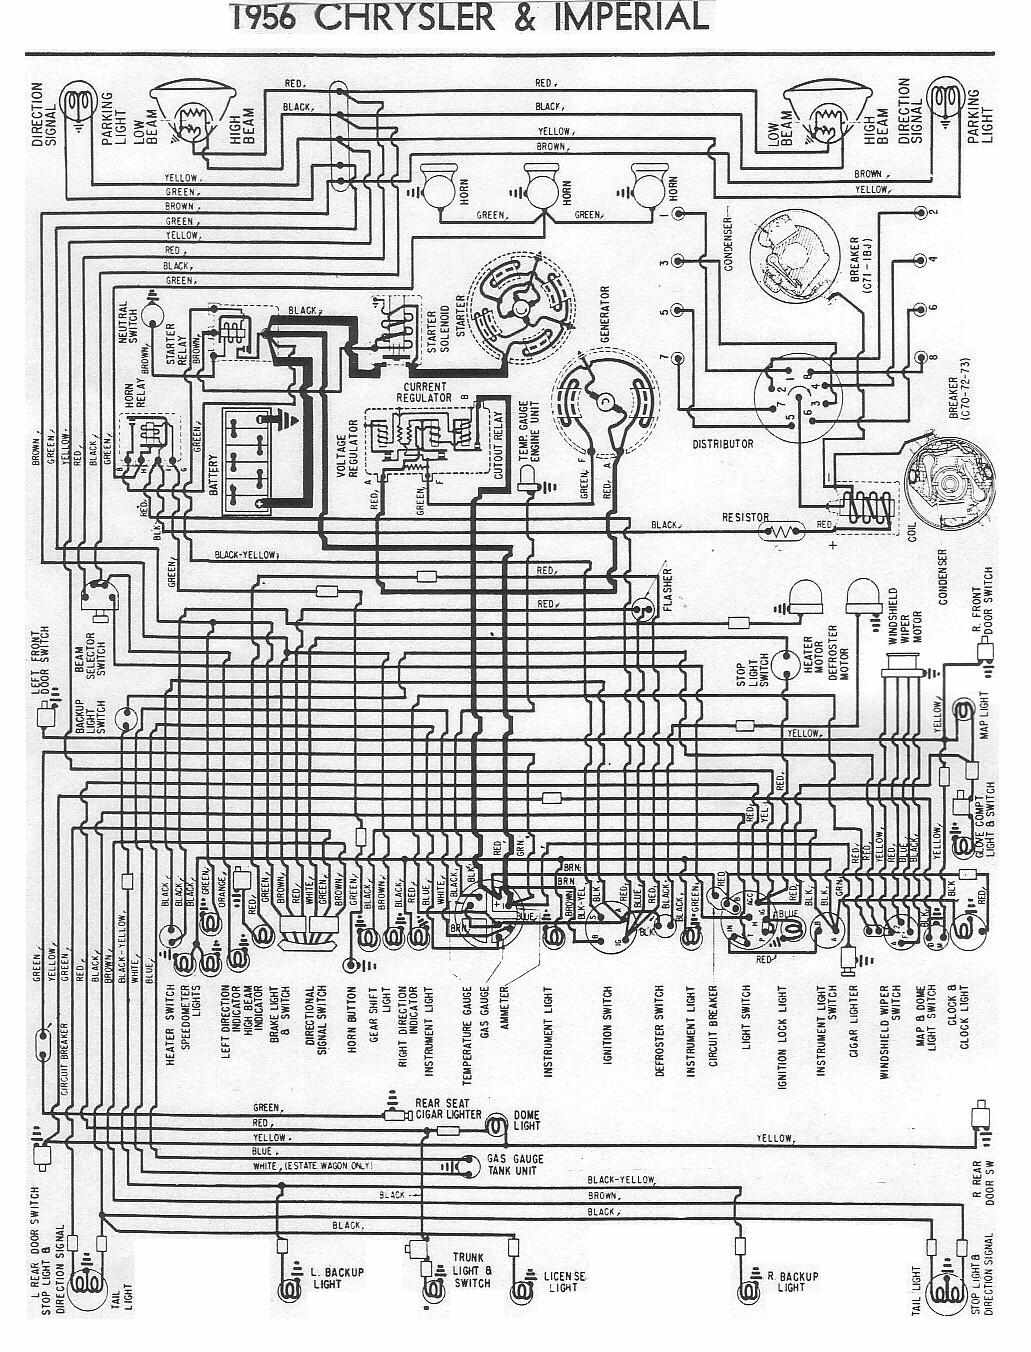 medium resolution of 1956 chrysler wiring diagram wiring diagram gowiring diagram of 1956 chrysler and imperial circuit wiring wiring